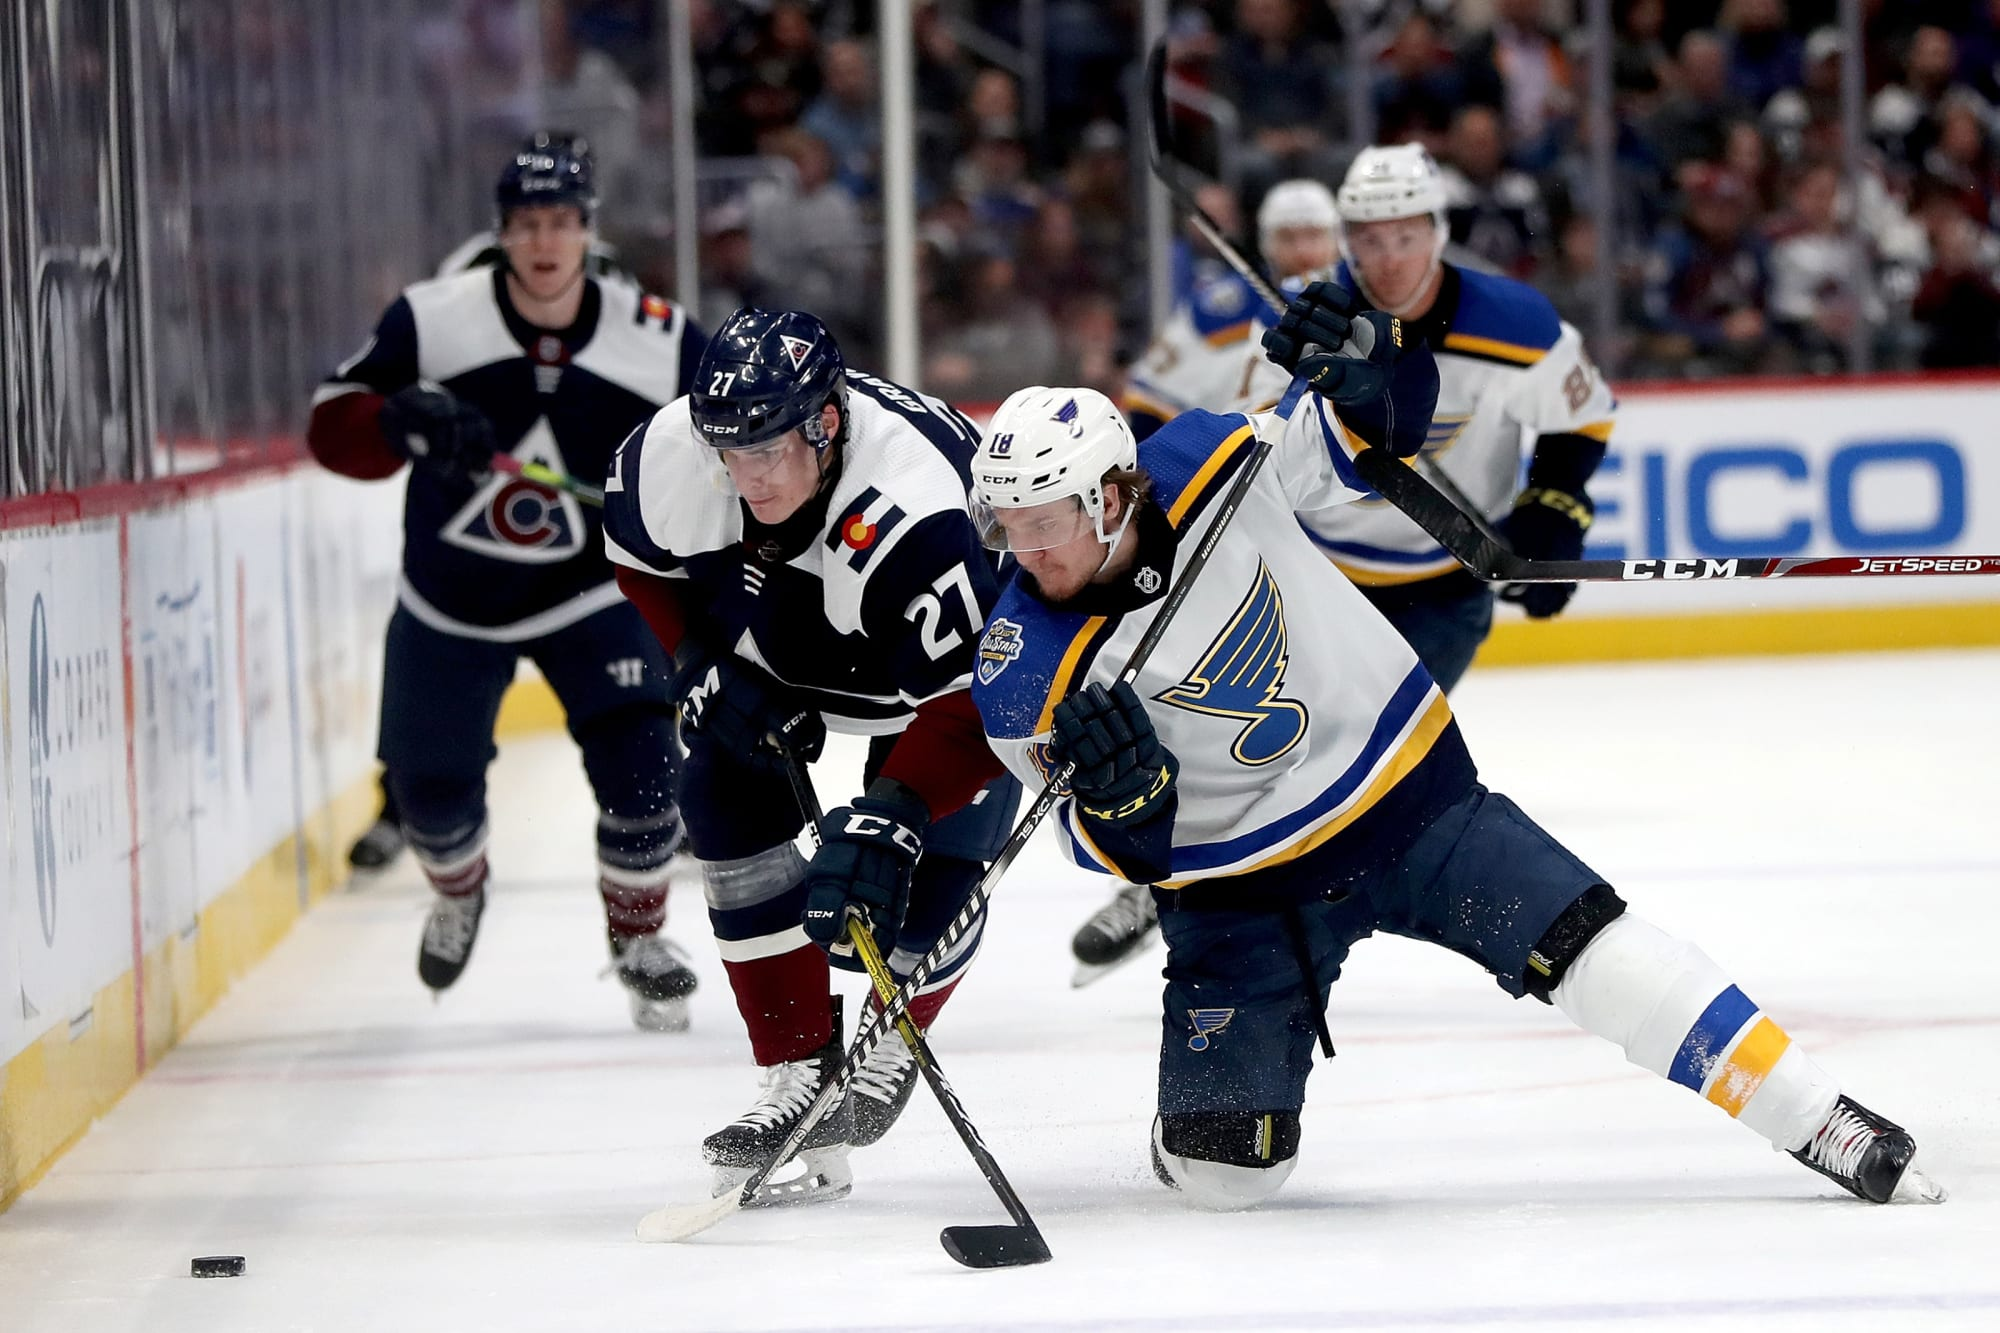 Stanley Cup Playoffs: St. Louis Blues vs. Colorado Avalanche start time, live stream